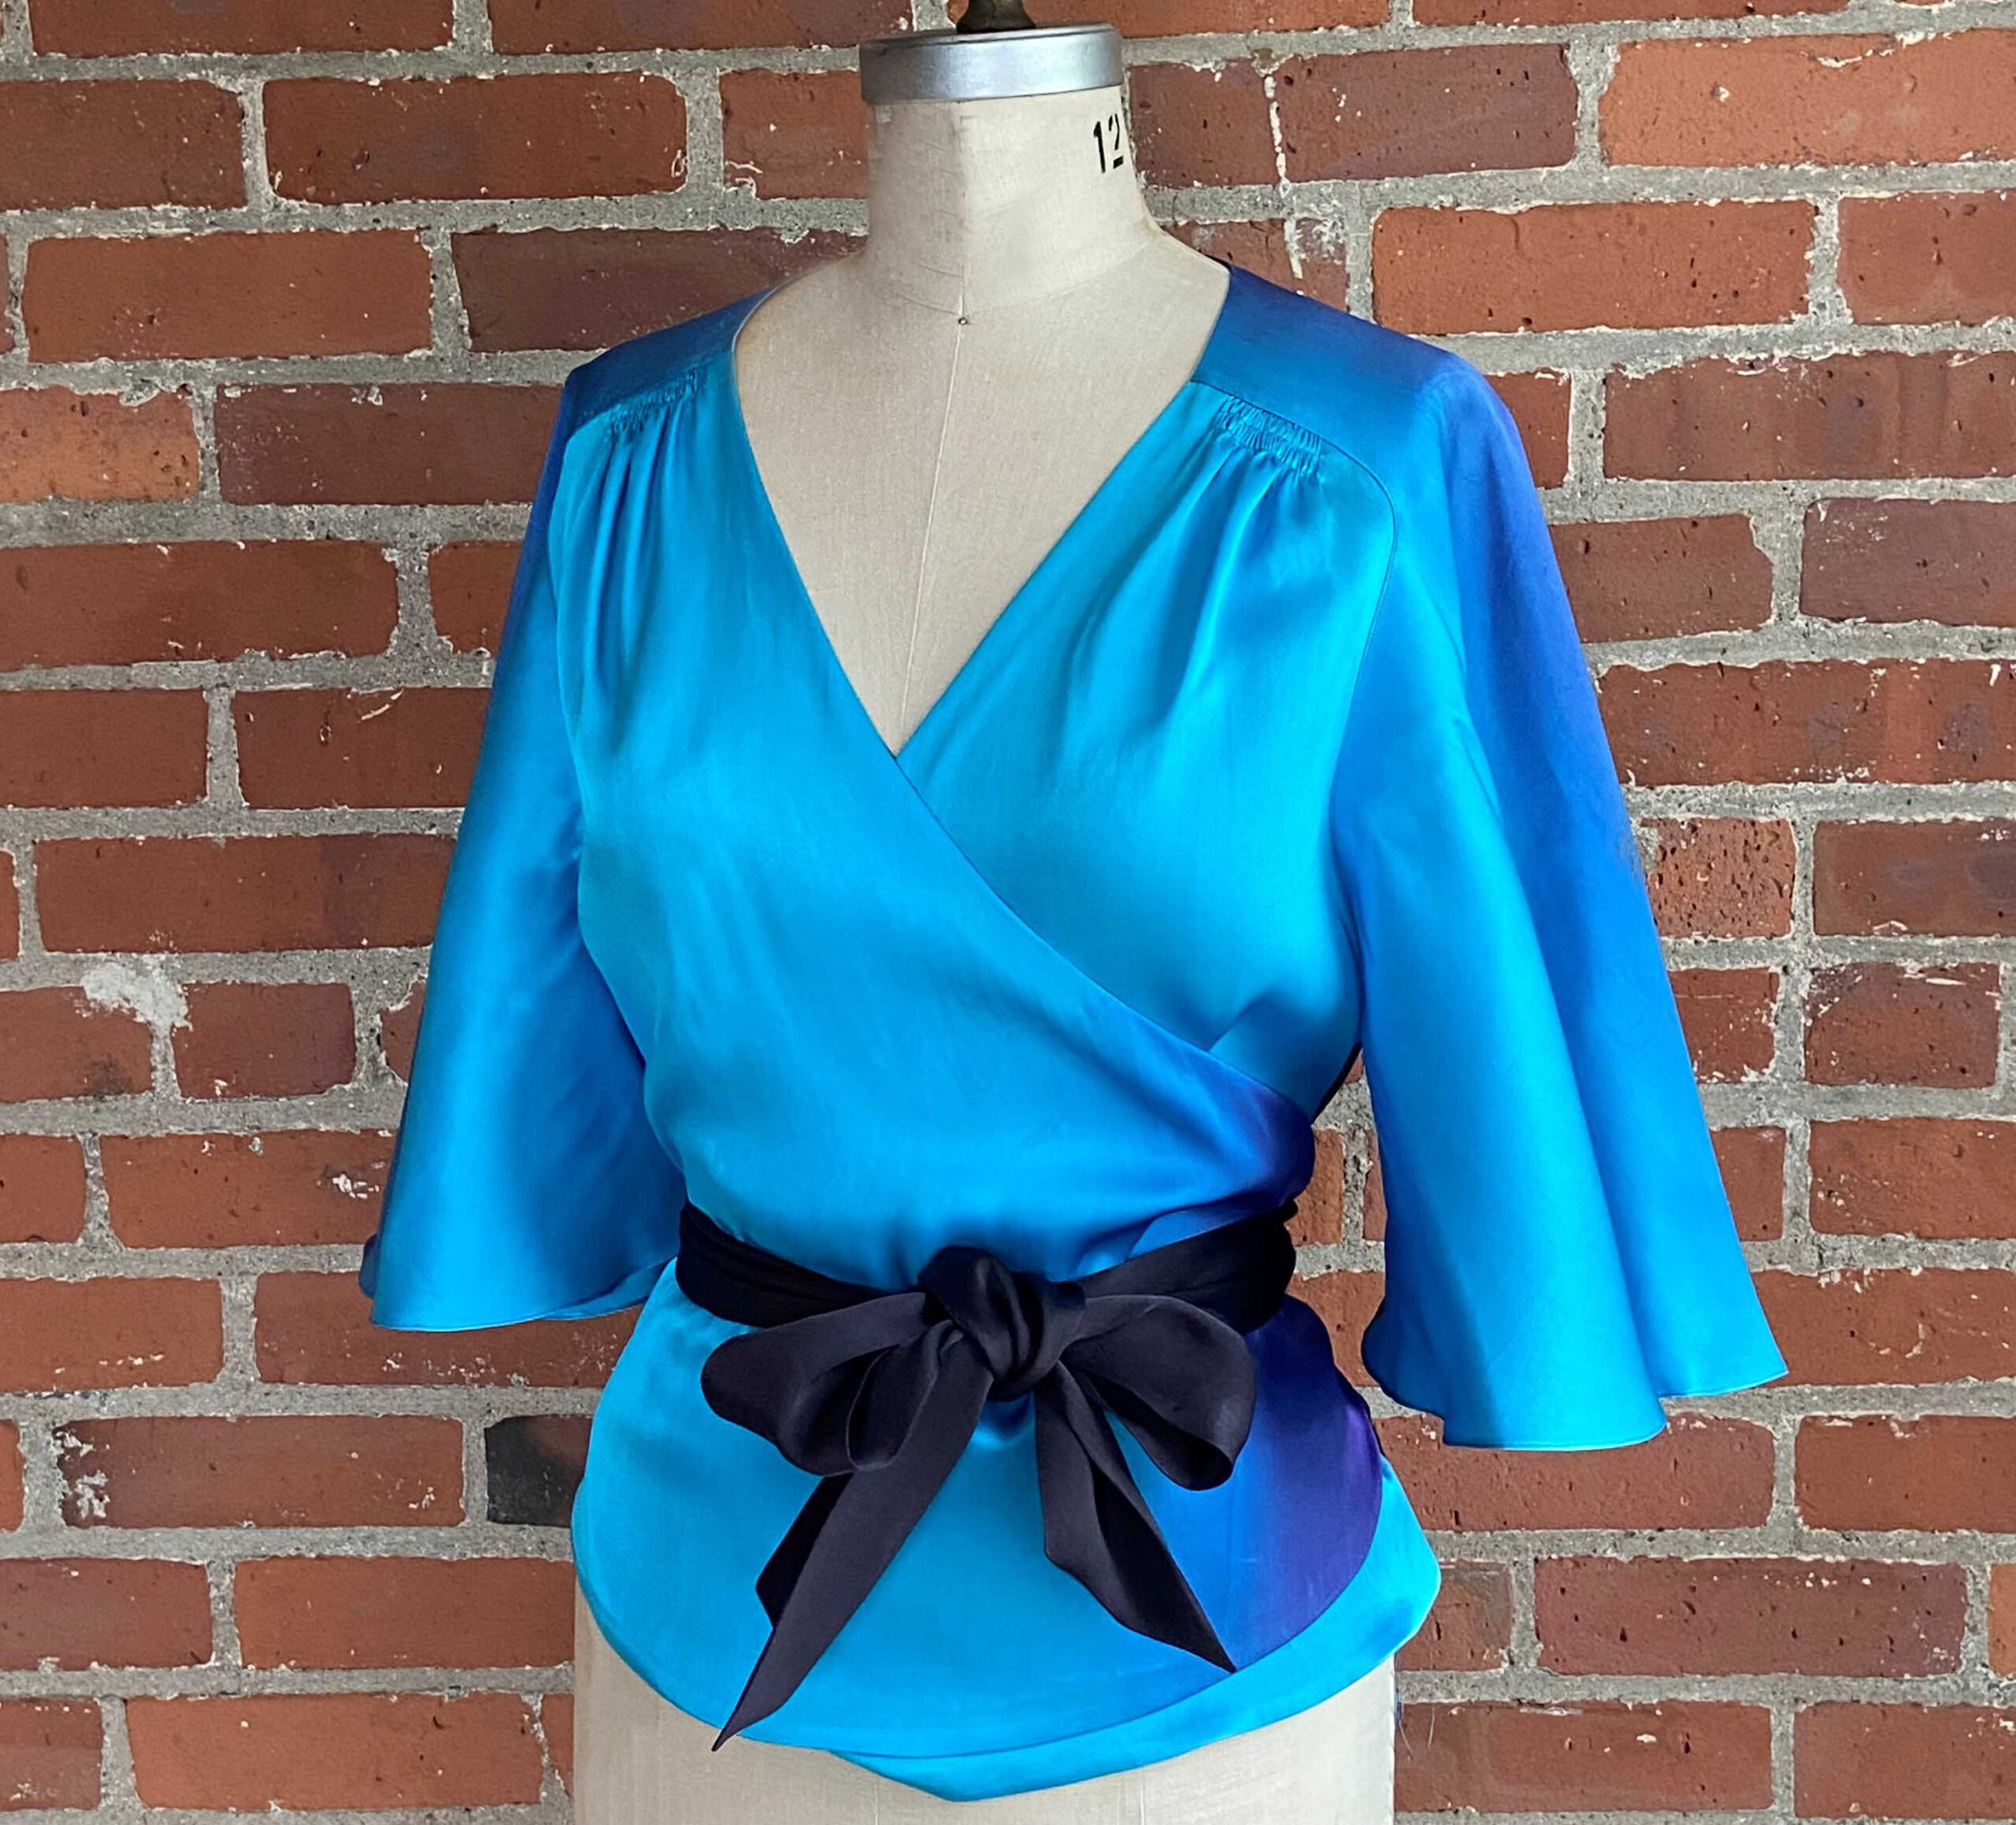 Decades of Style #3005 Butterfly Blouse with yoke seam, belted and on a dress form